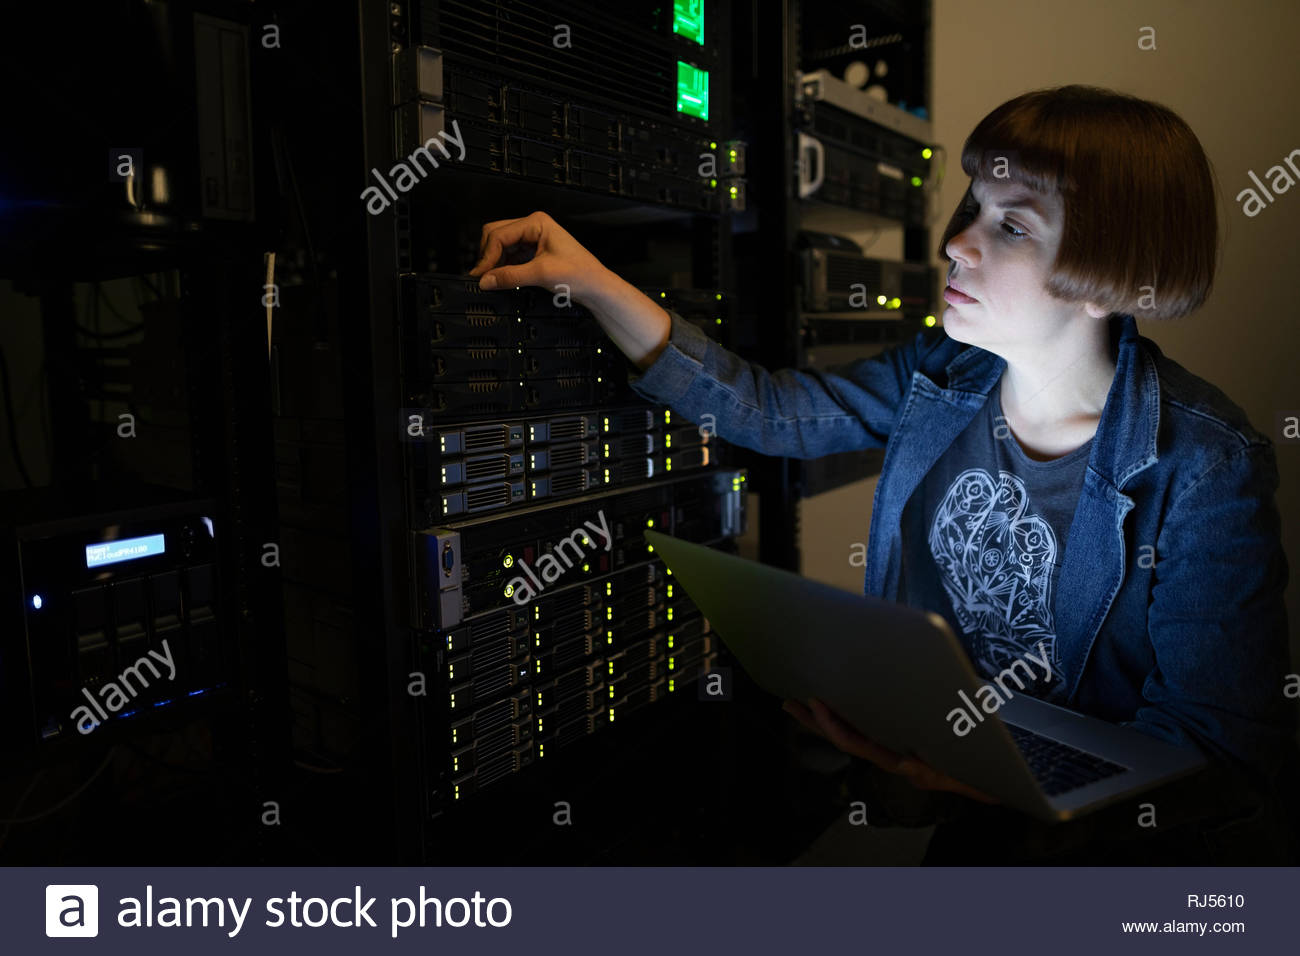 Female IT technician with laptop in server room - Stock Image